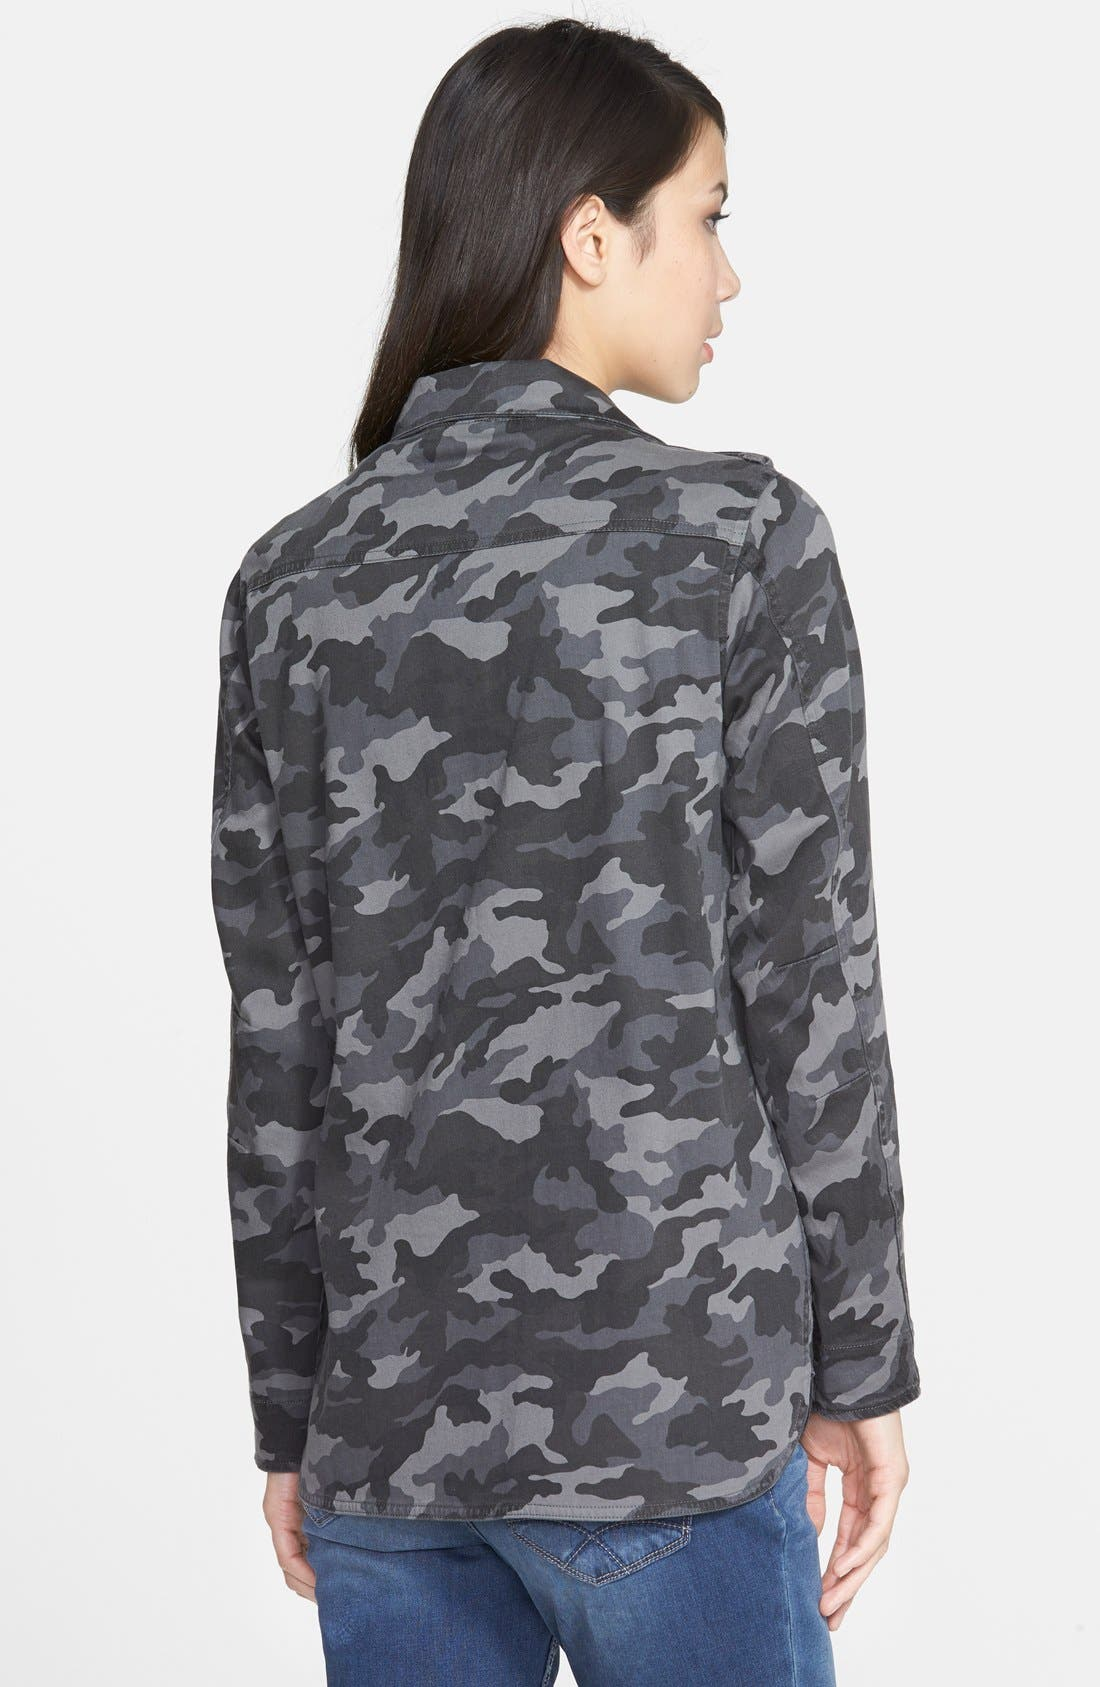 PRESS, Lightweight Stretch Cotton Military Jacket, Alternate thumbnail 4, color, 021